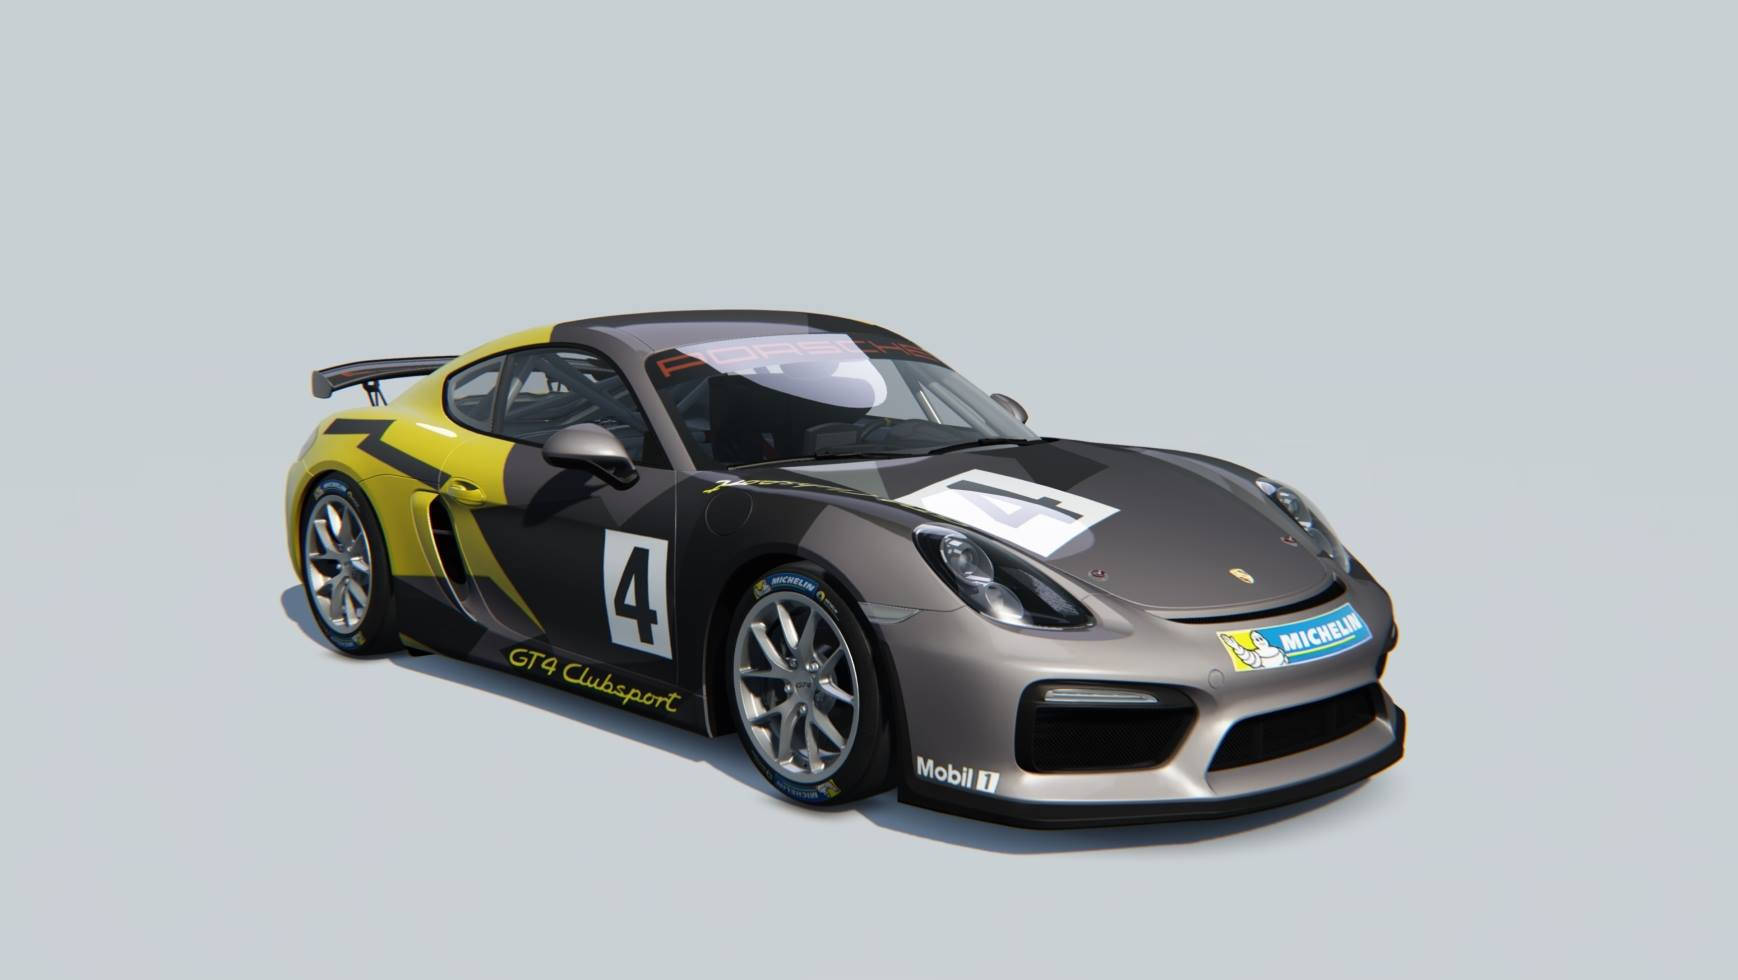 ny serie i ac porsche gt4 clubsport 7 nov 12 dec virtual grand prix. Black Bedroom Furniture Sets. Home Design Ideas